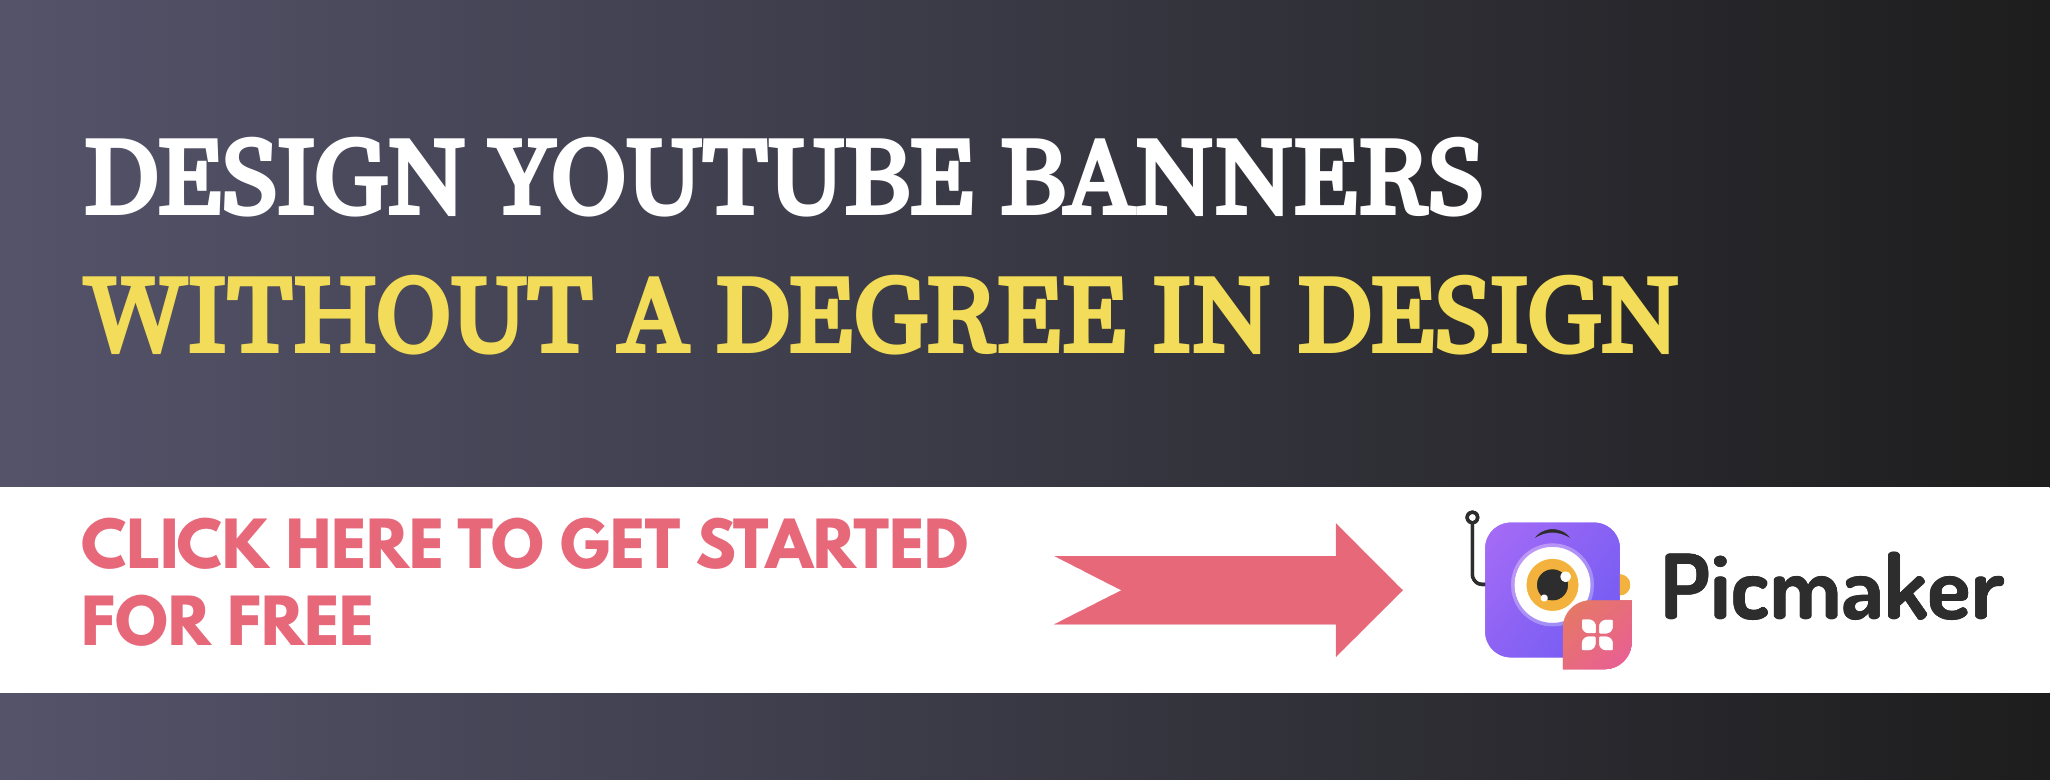 Create-your-own-Youtube-banner-with-Picmaker-3